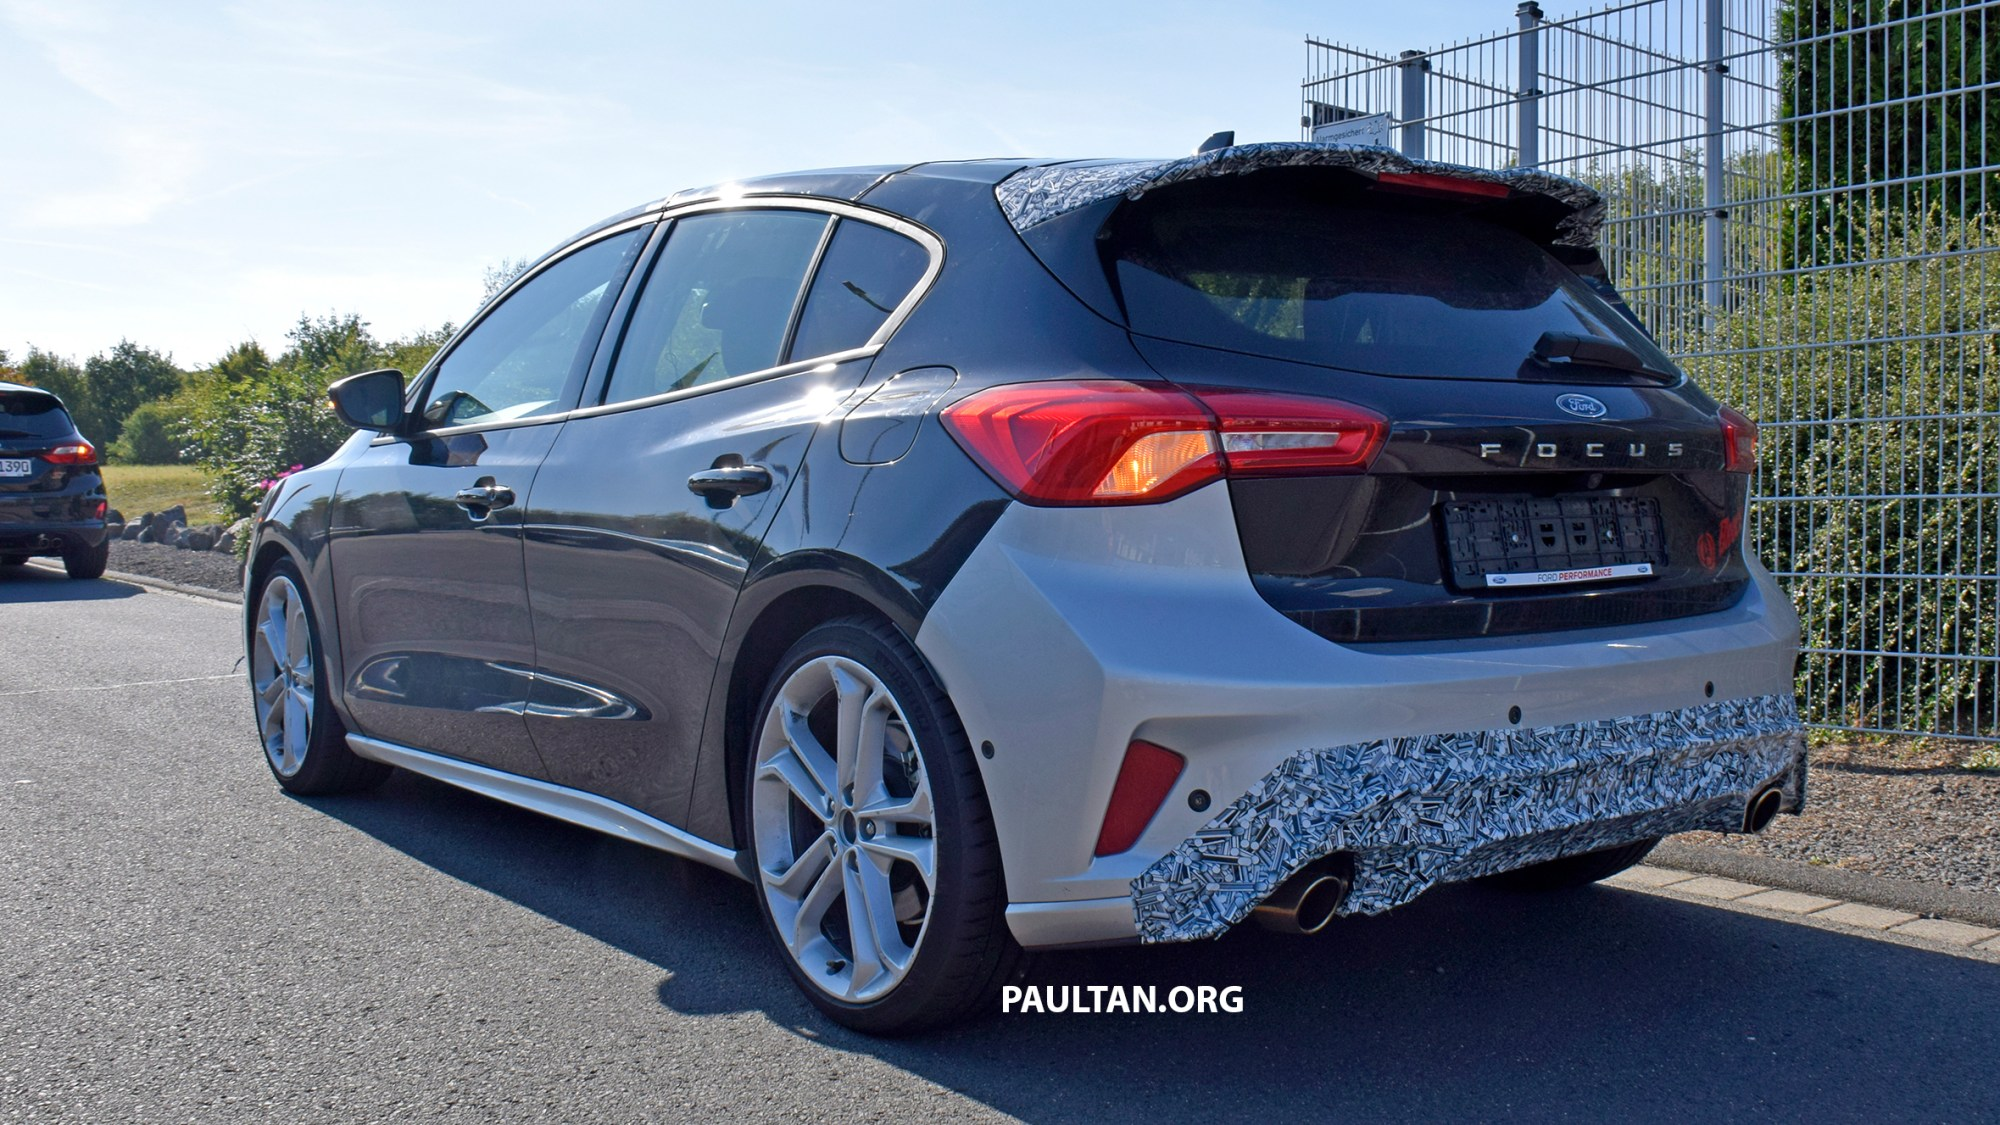 hight resolution of ford focus s spied 2019 ford focus st 275 hp from 1 5